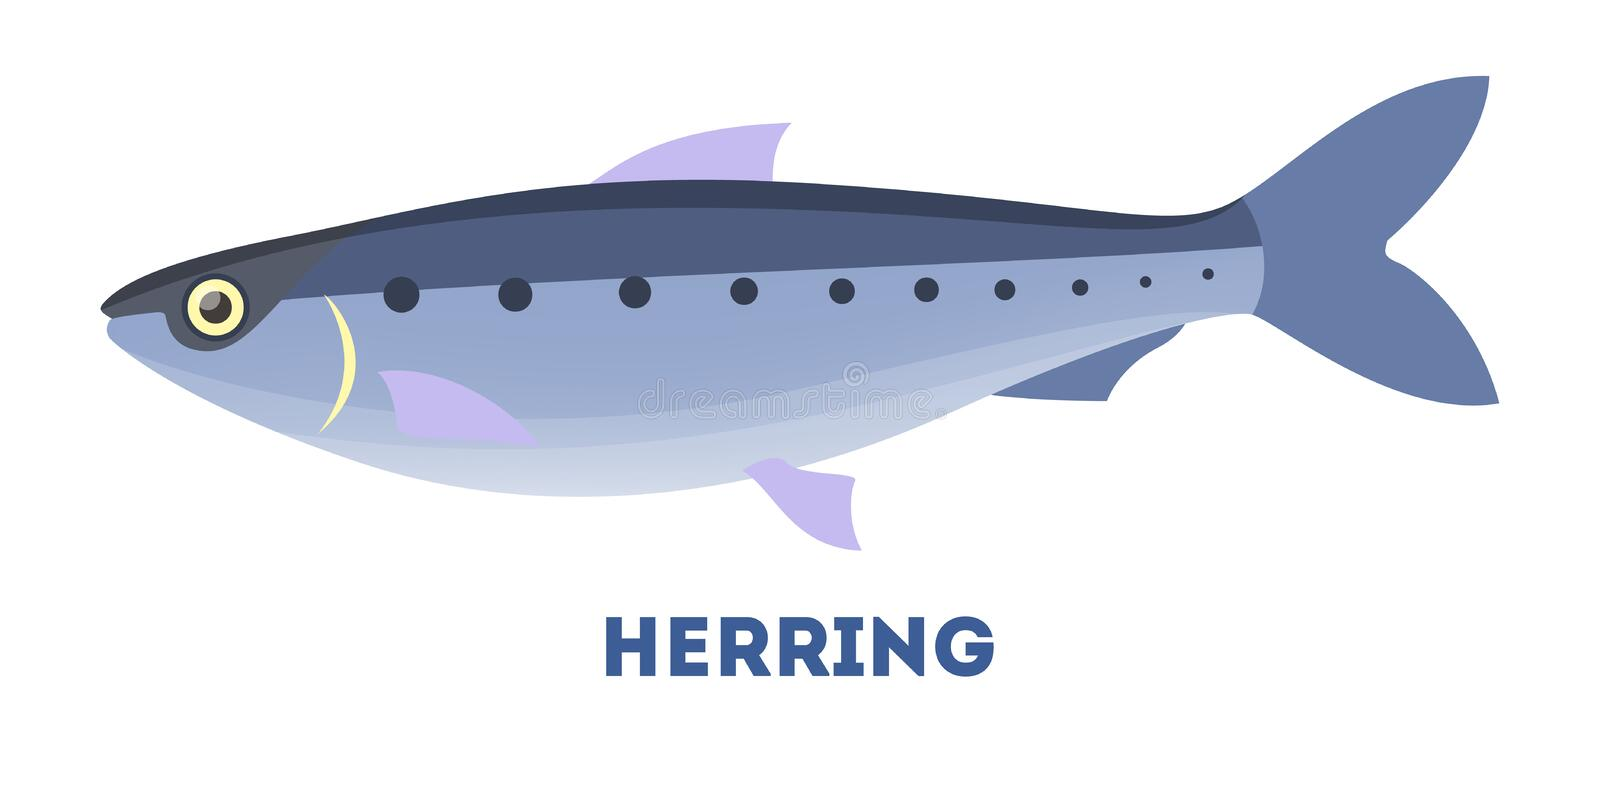 Herring fish from the ocean or sea. Marine creature and water wildlife. Flat vector illustration vector illustration